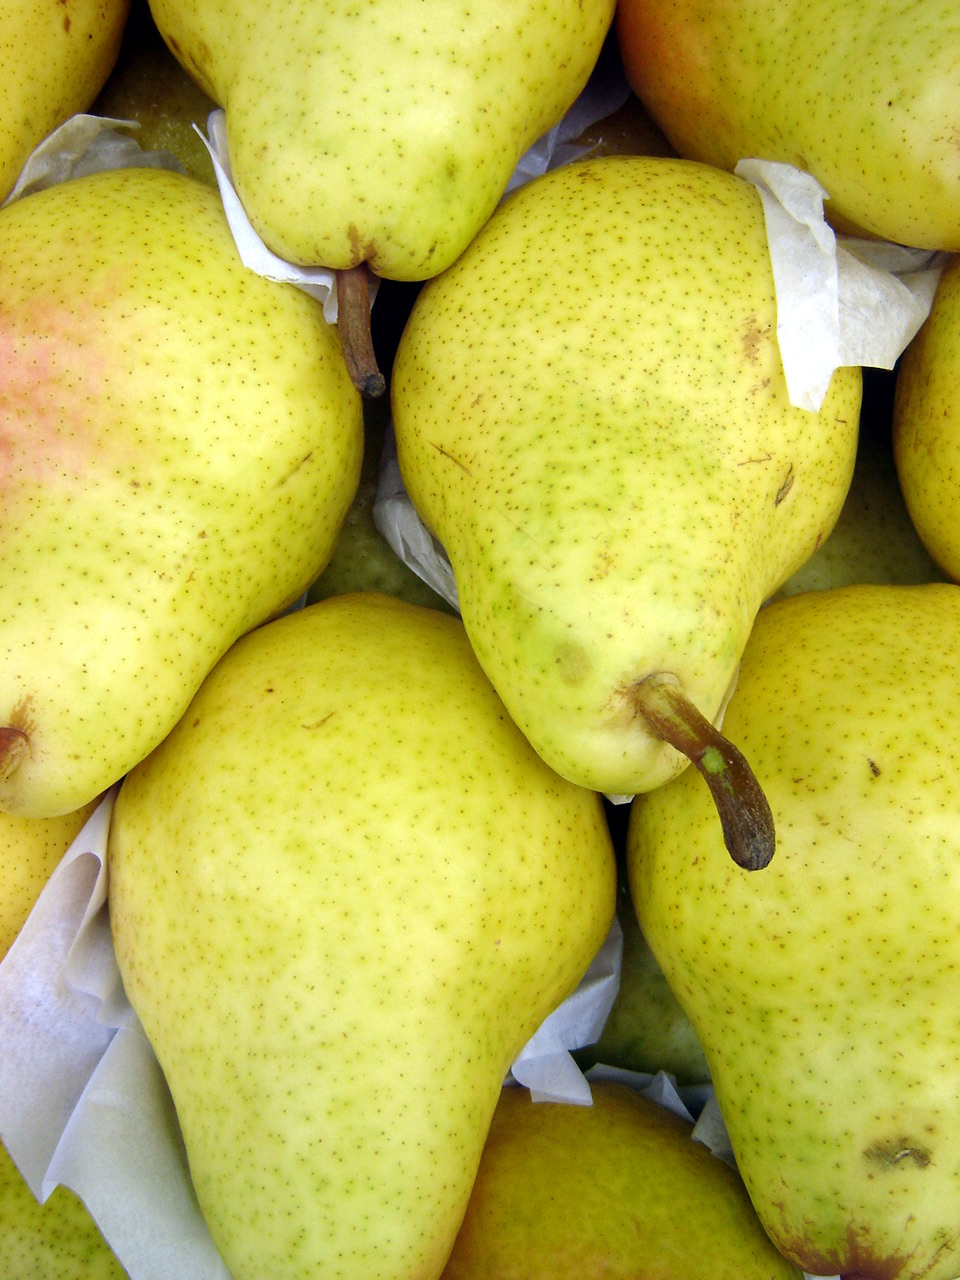 http://upload.wikimedia.org/wikipedia/commons/2/2e/Peras_-_Pears.jpg